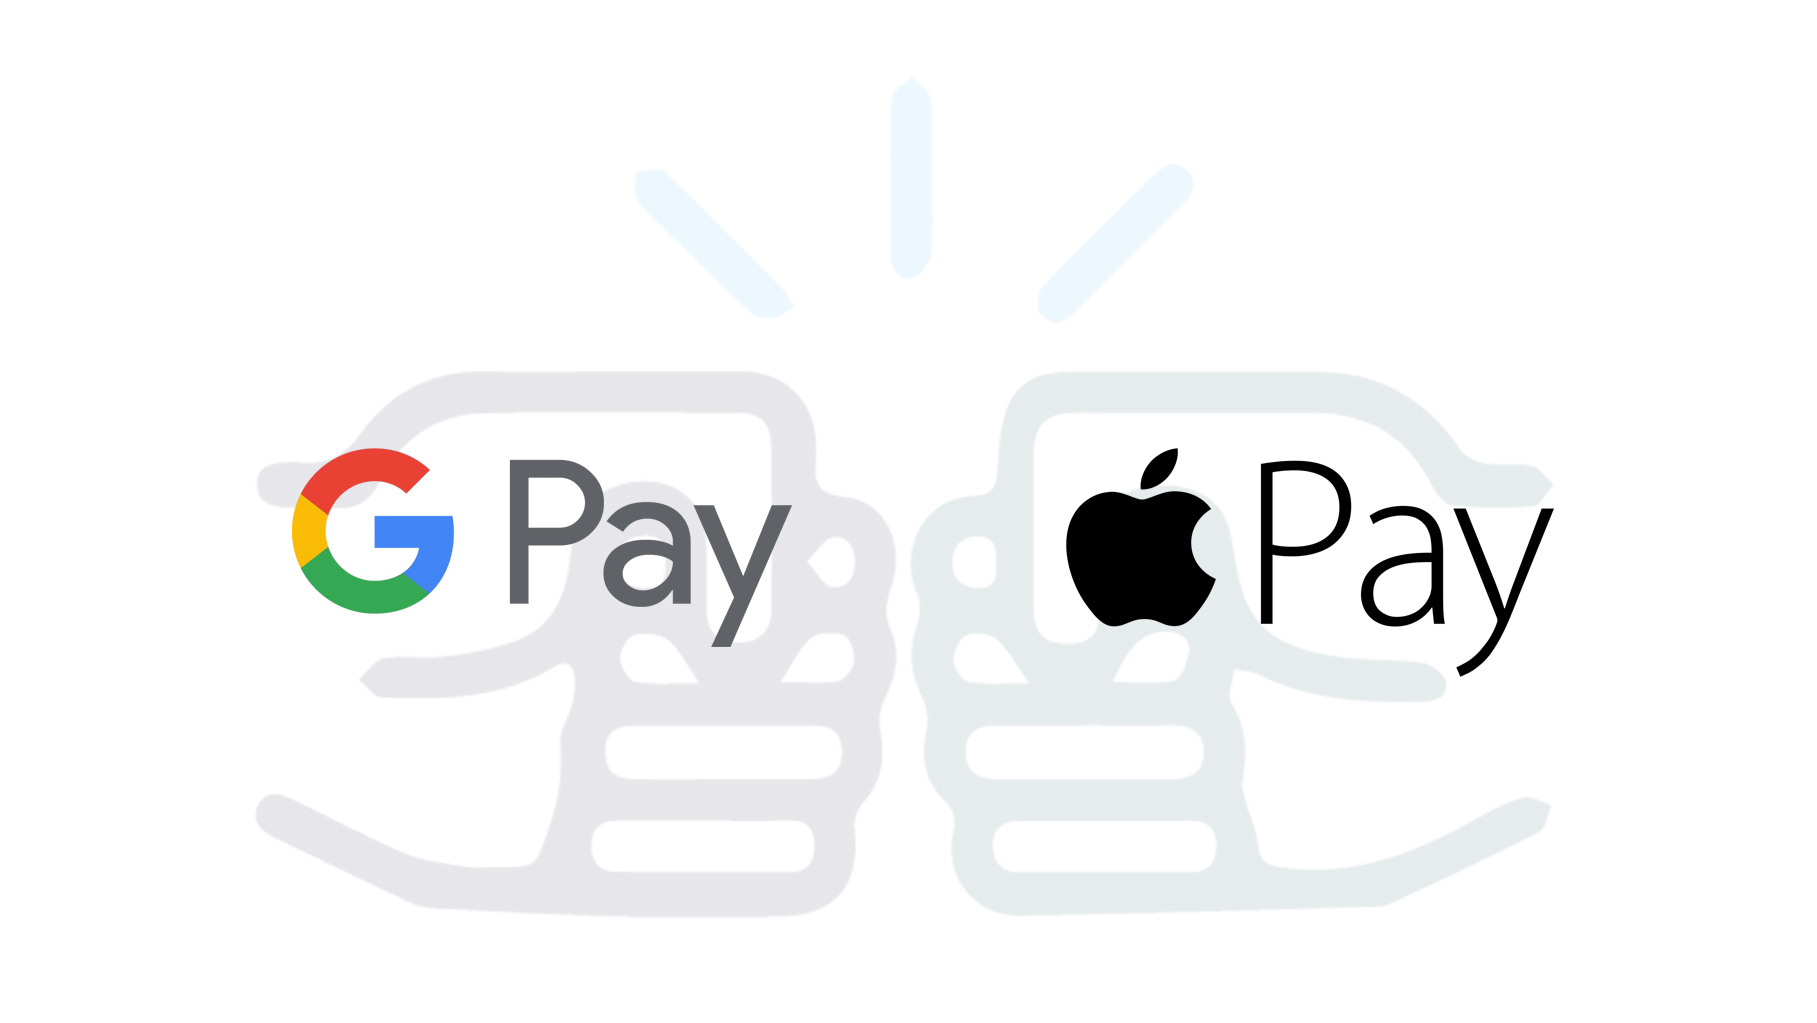 Apple Pay vs. Google Pay [video]